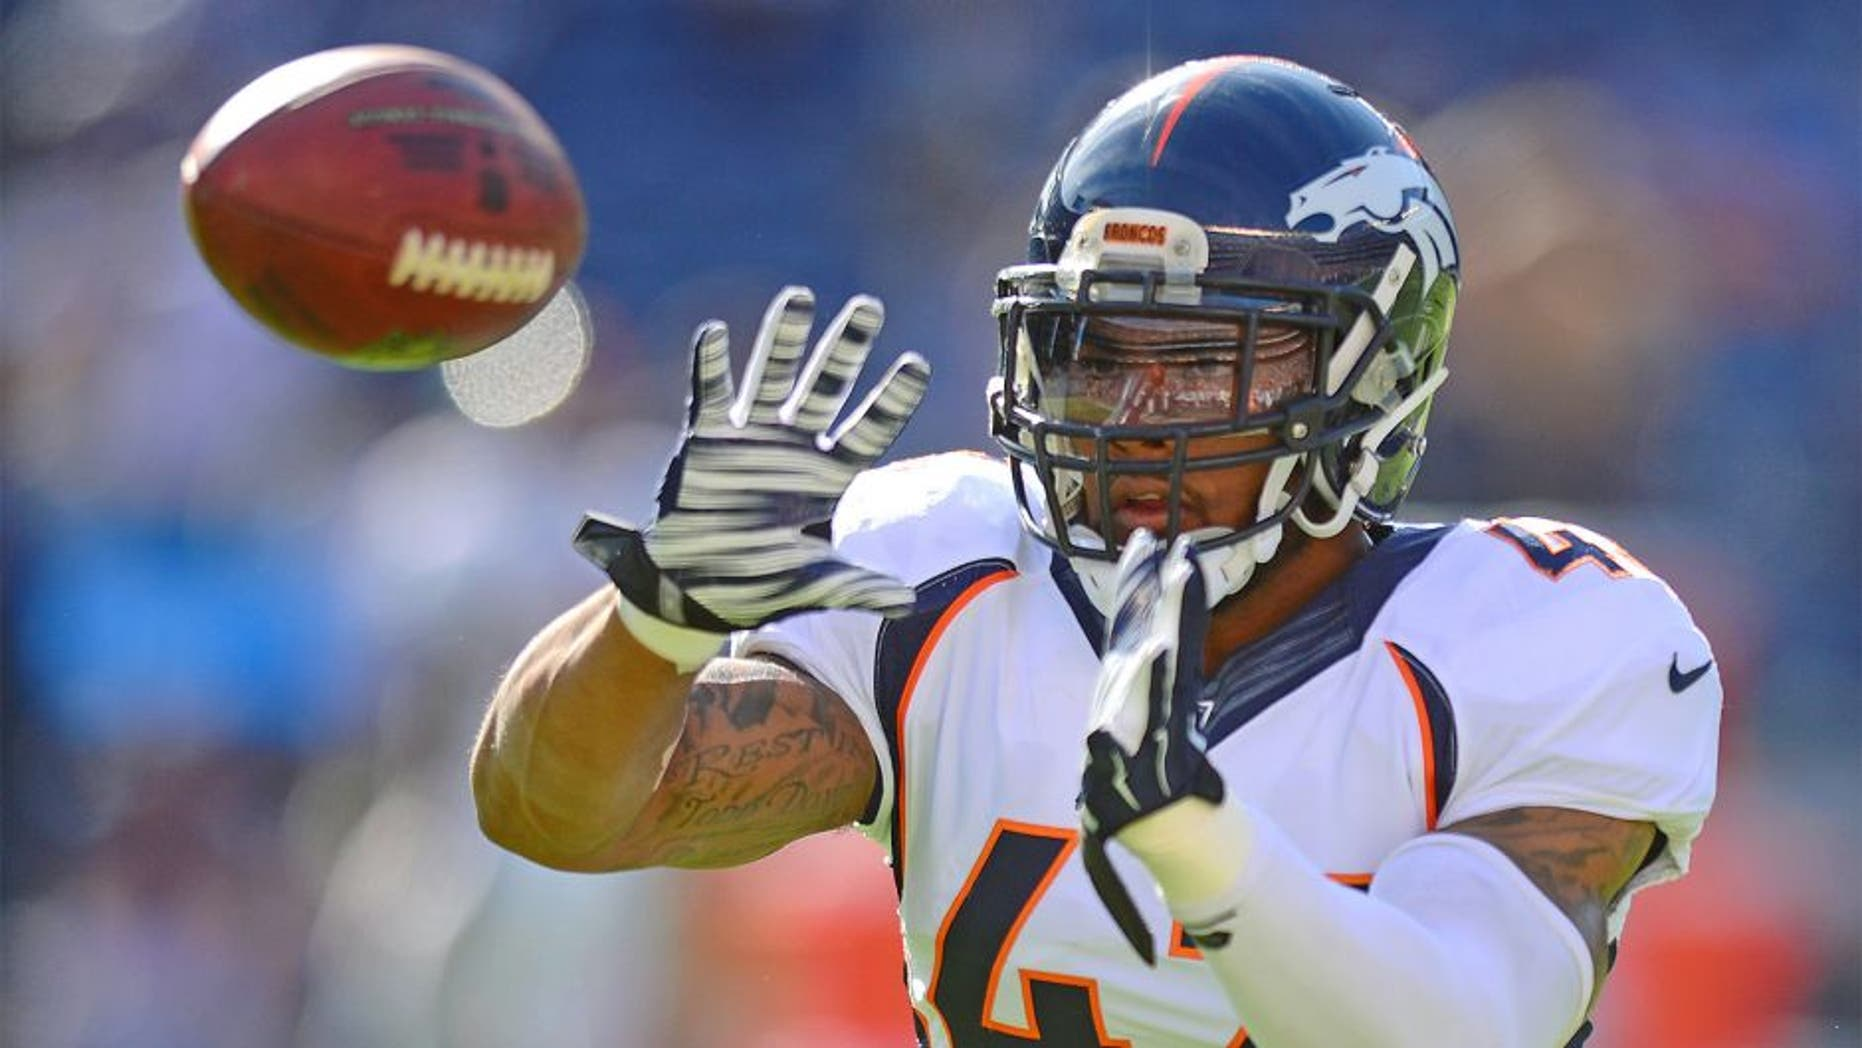 Dec 14, 2014; San Diego, CA, USA; Denver Broncos strong safety T.J. Ward (43) catches a pass before the game against the San Diego Chargers at Qualcomm Stadium. Mandatory Credit: Jake Roth-USA TODAY Sports